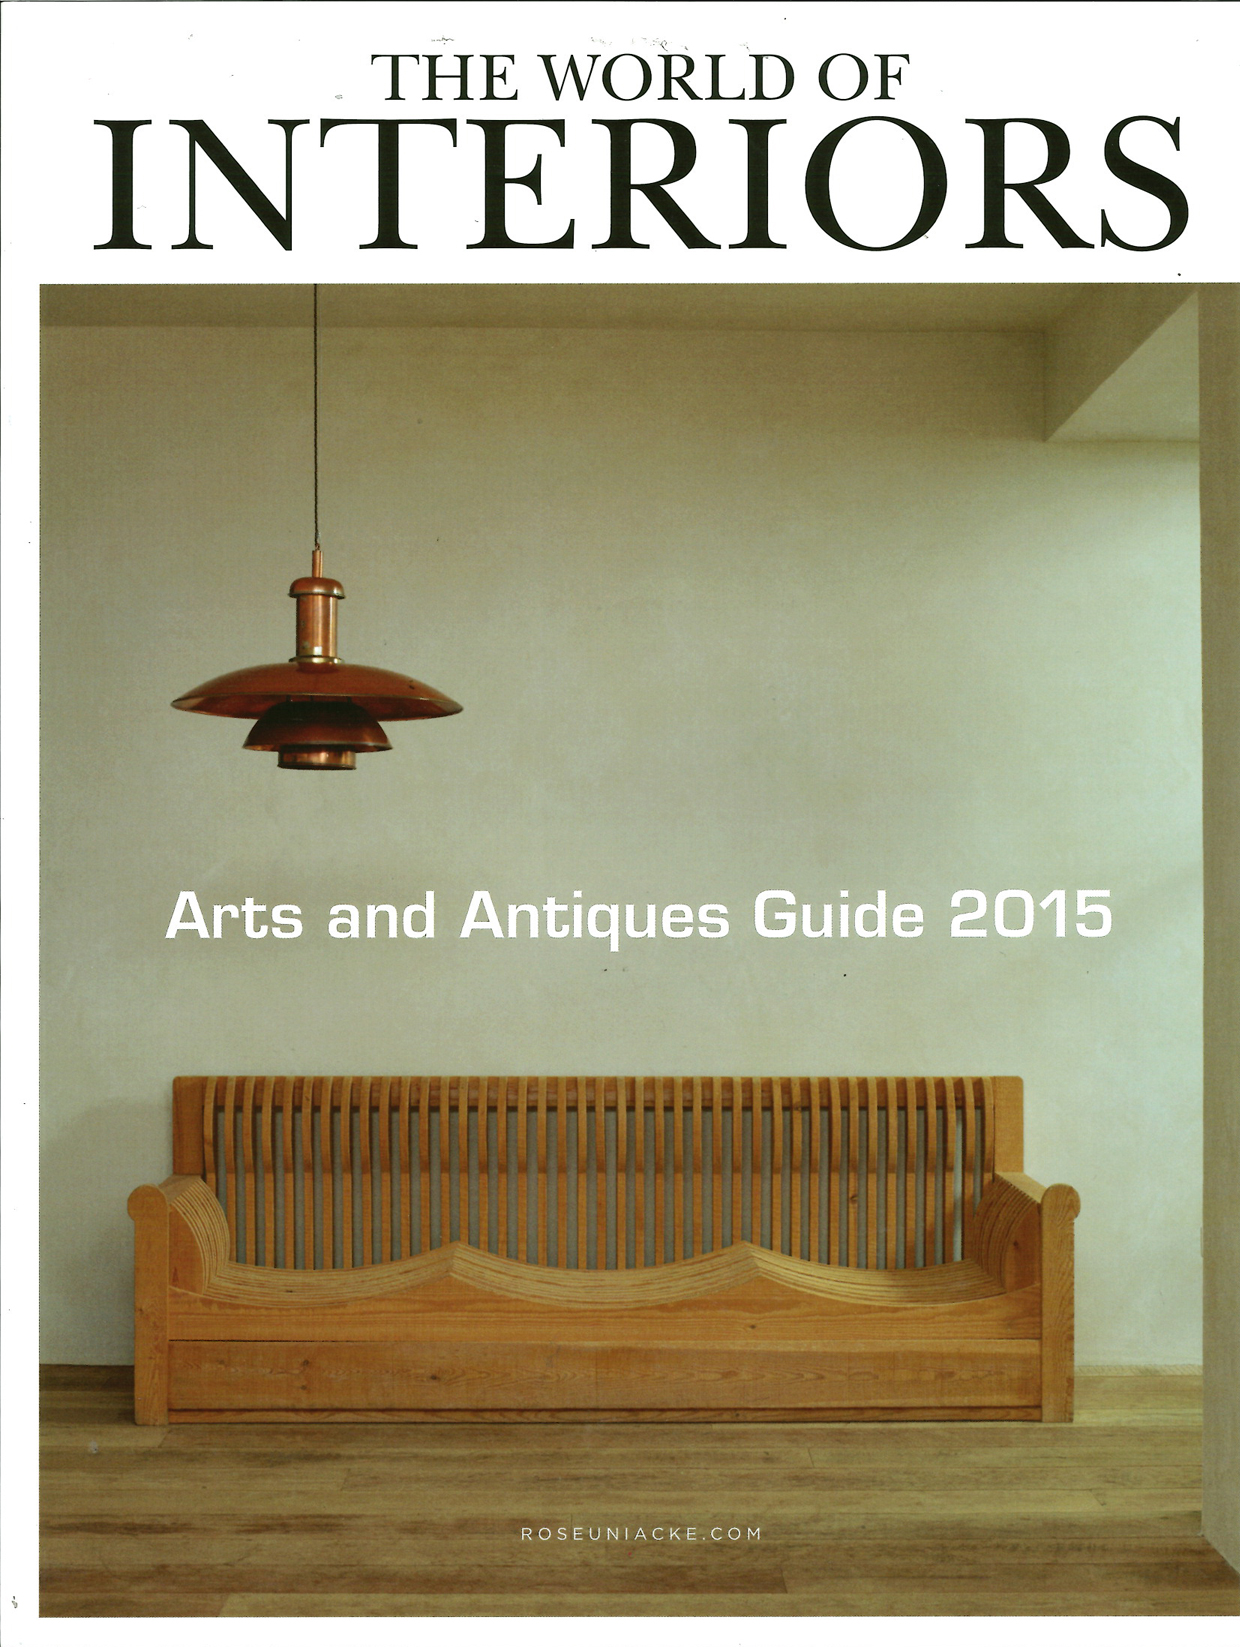 World Of Interiors - Arts & Antiques Guide 2015 (Page 0)